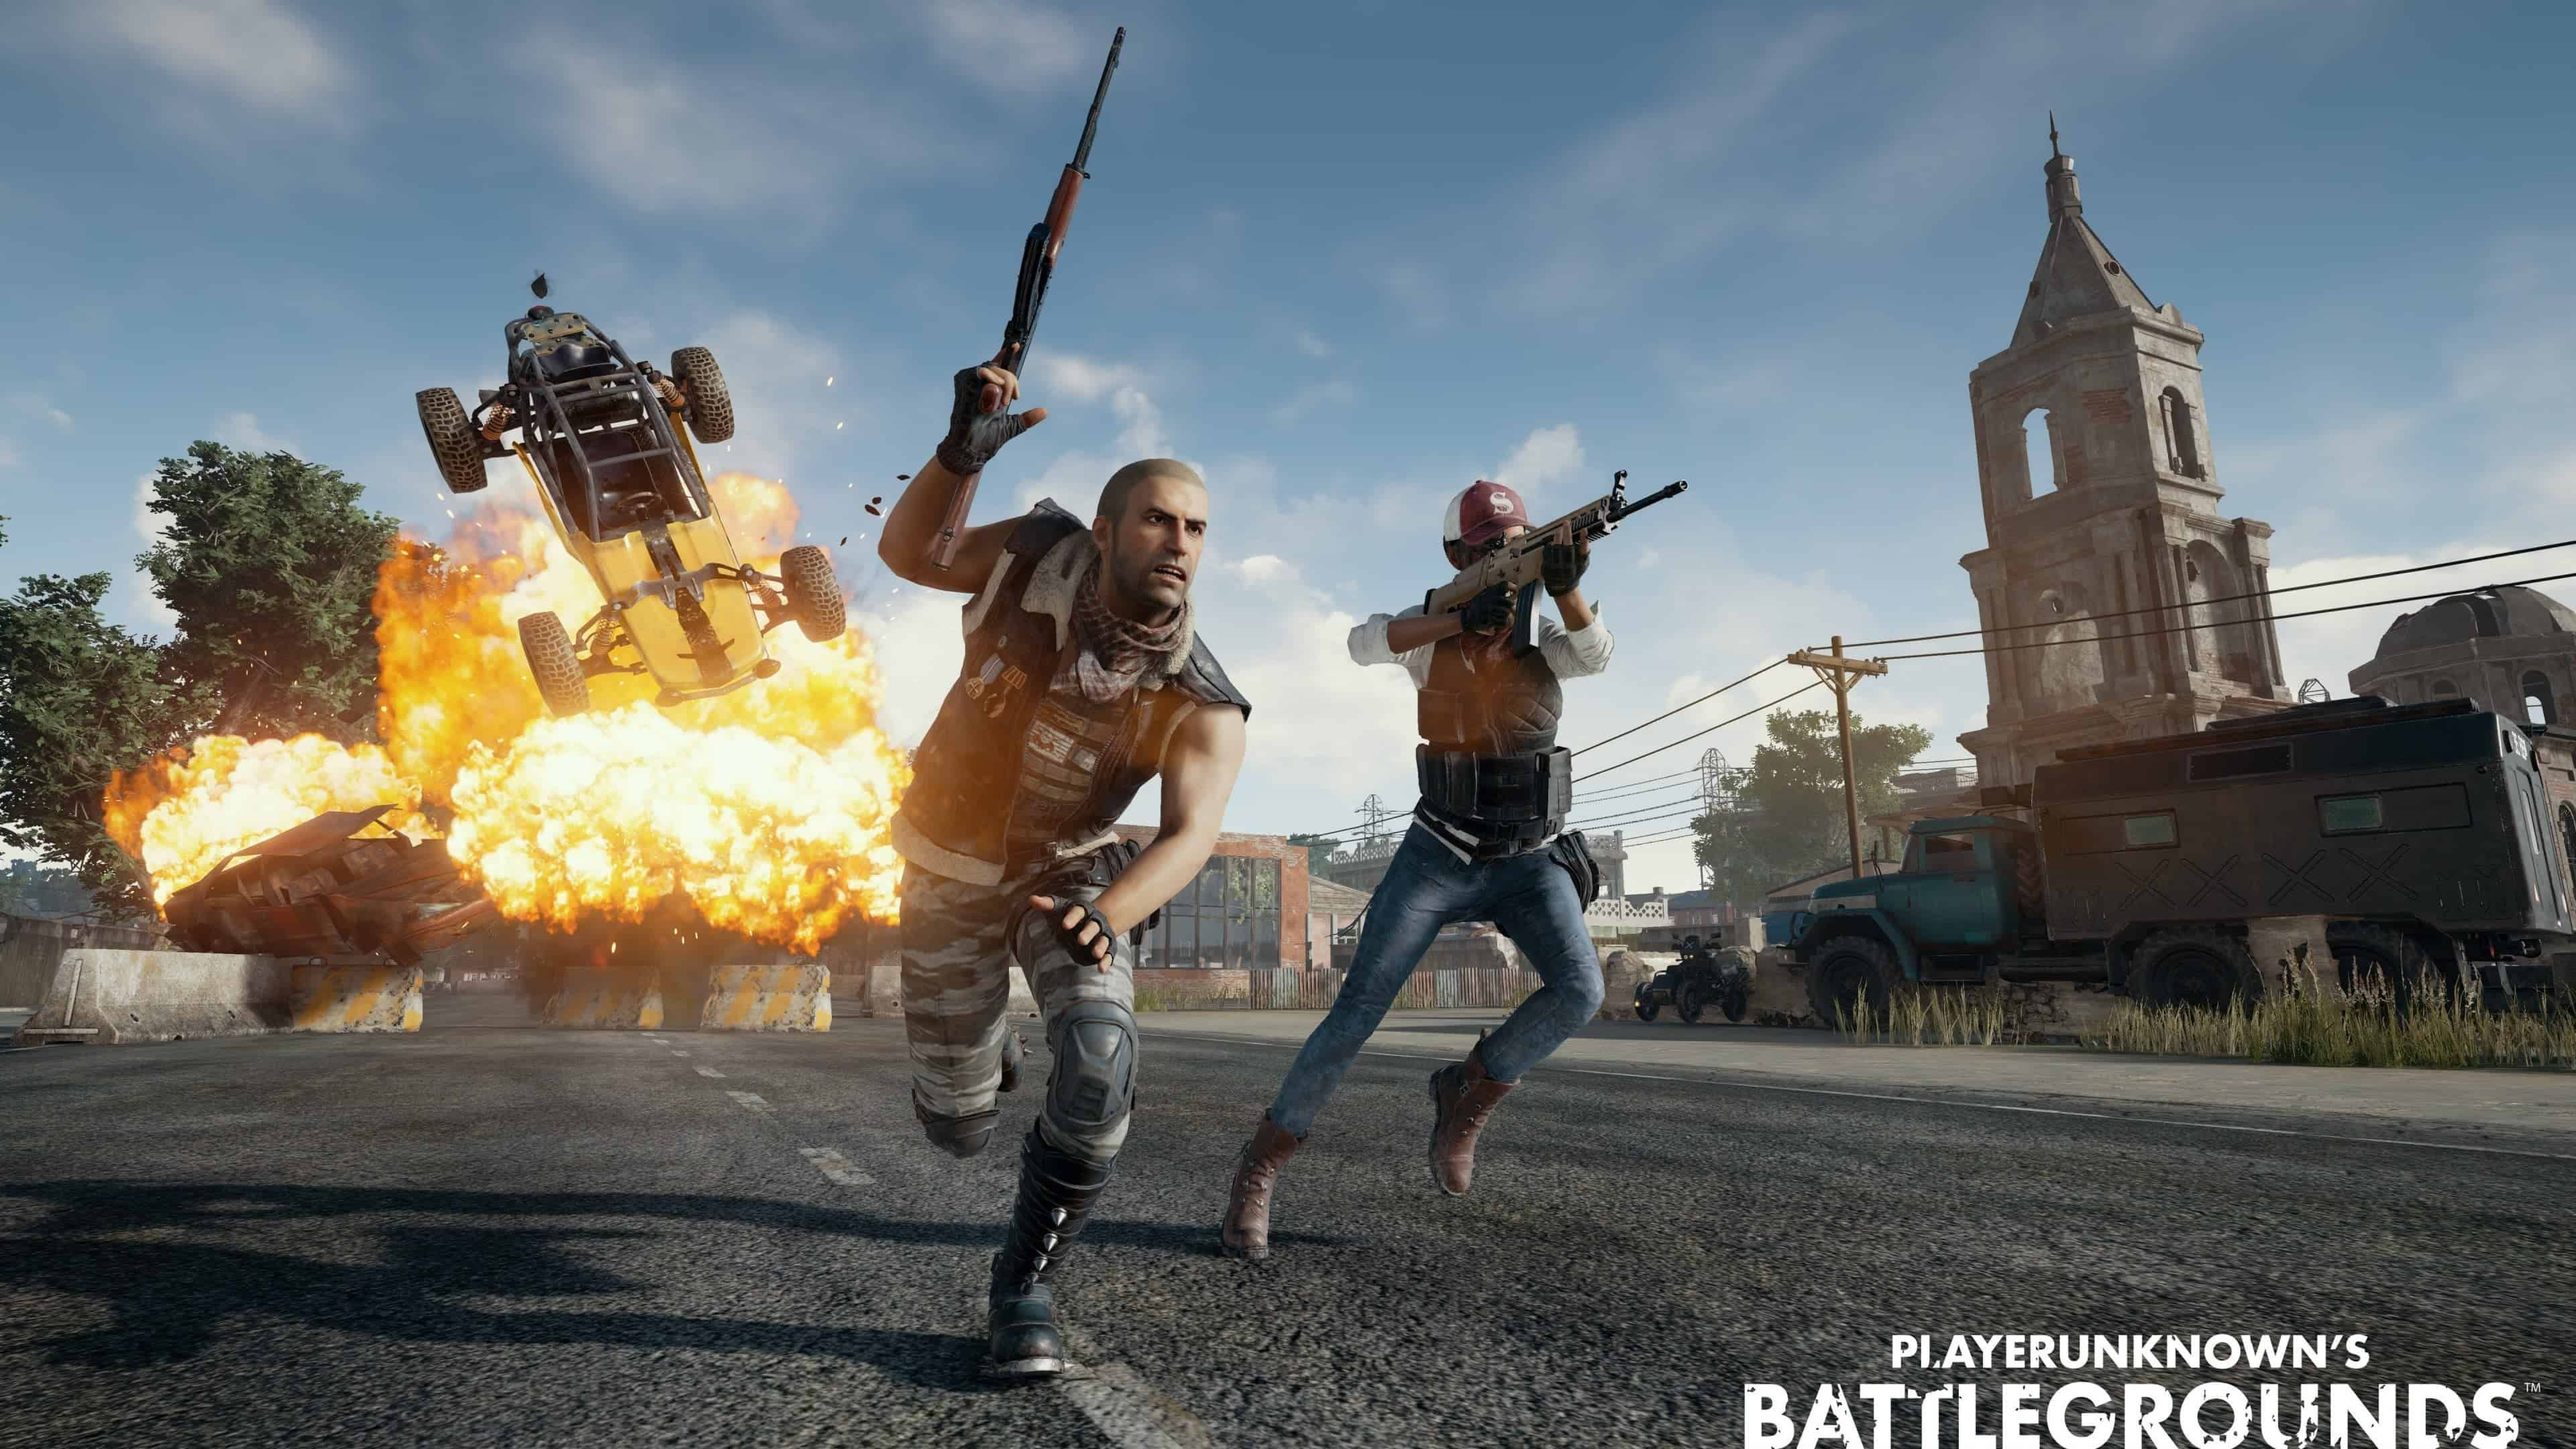 Pubg 4k In 2020 Hd Wallpapers For Pc Gaming Wallpapers Android Wallpaper